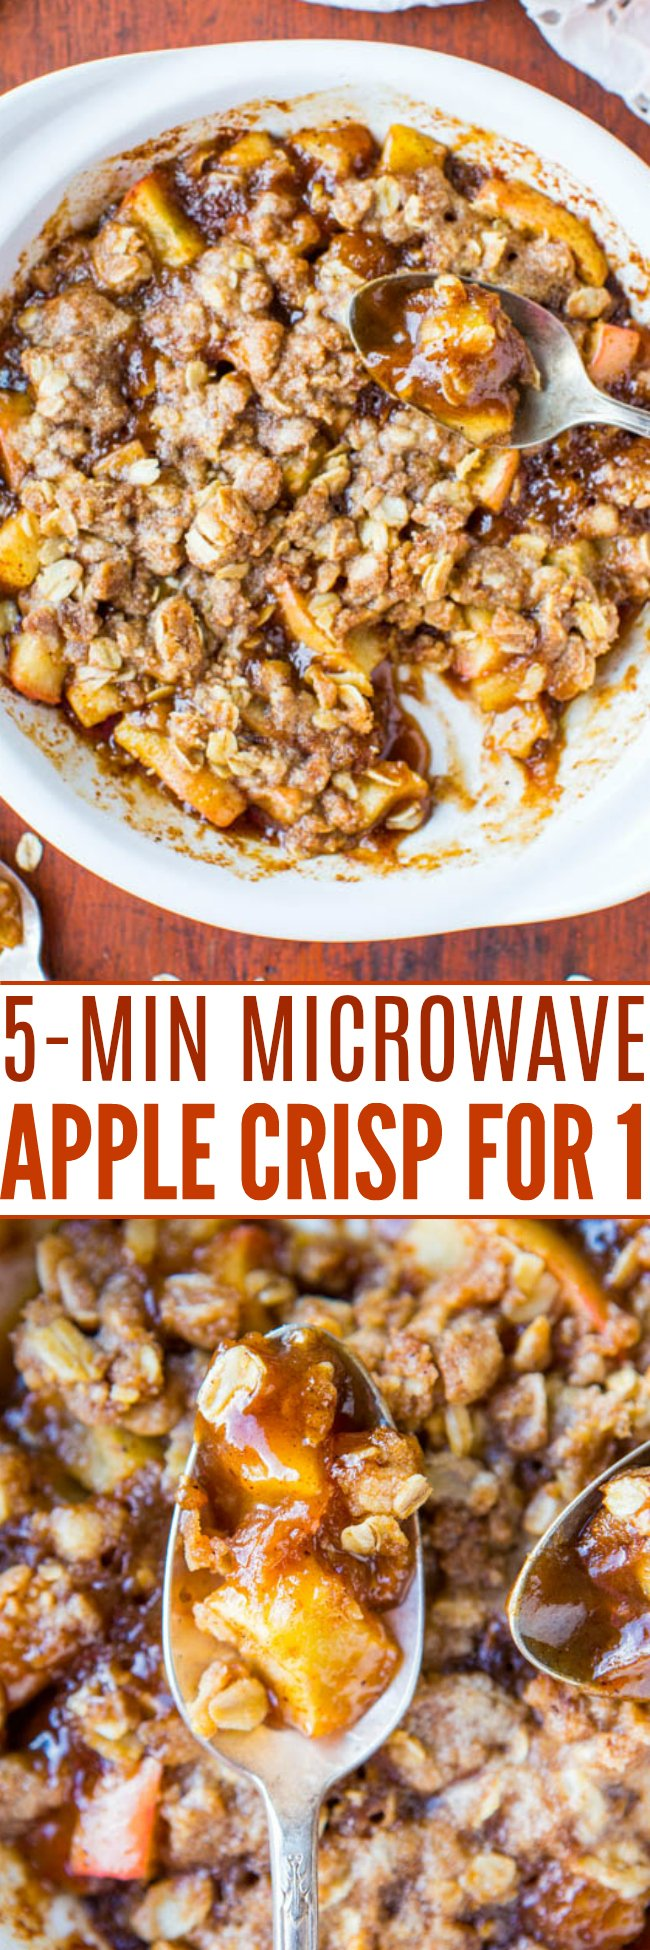 Microwave Apple Crisp — This microwave apple crisp comes together in just 5 minutes and generously serves one person. Top it with a scoop or ice cream or whipped cream!